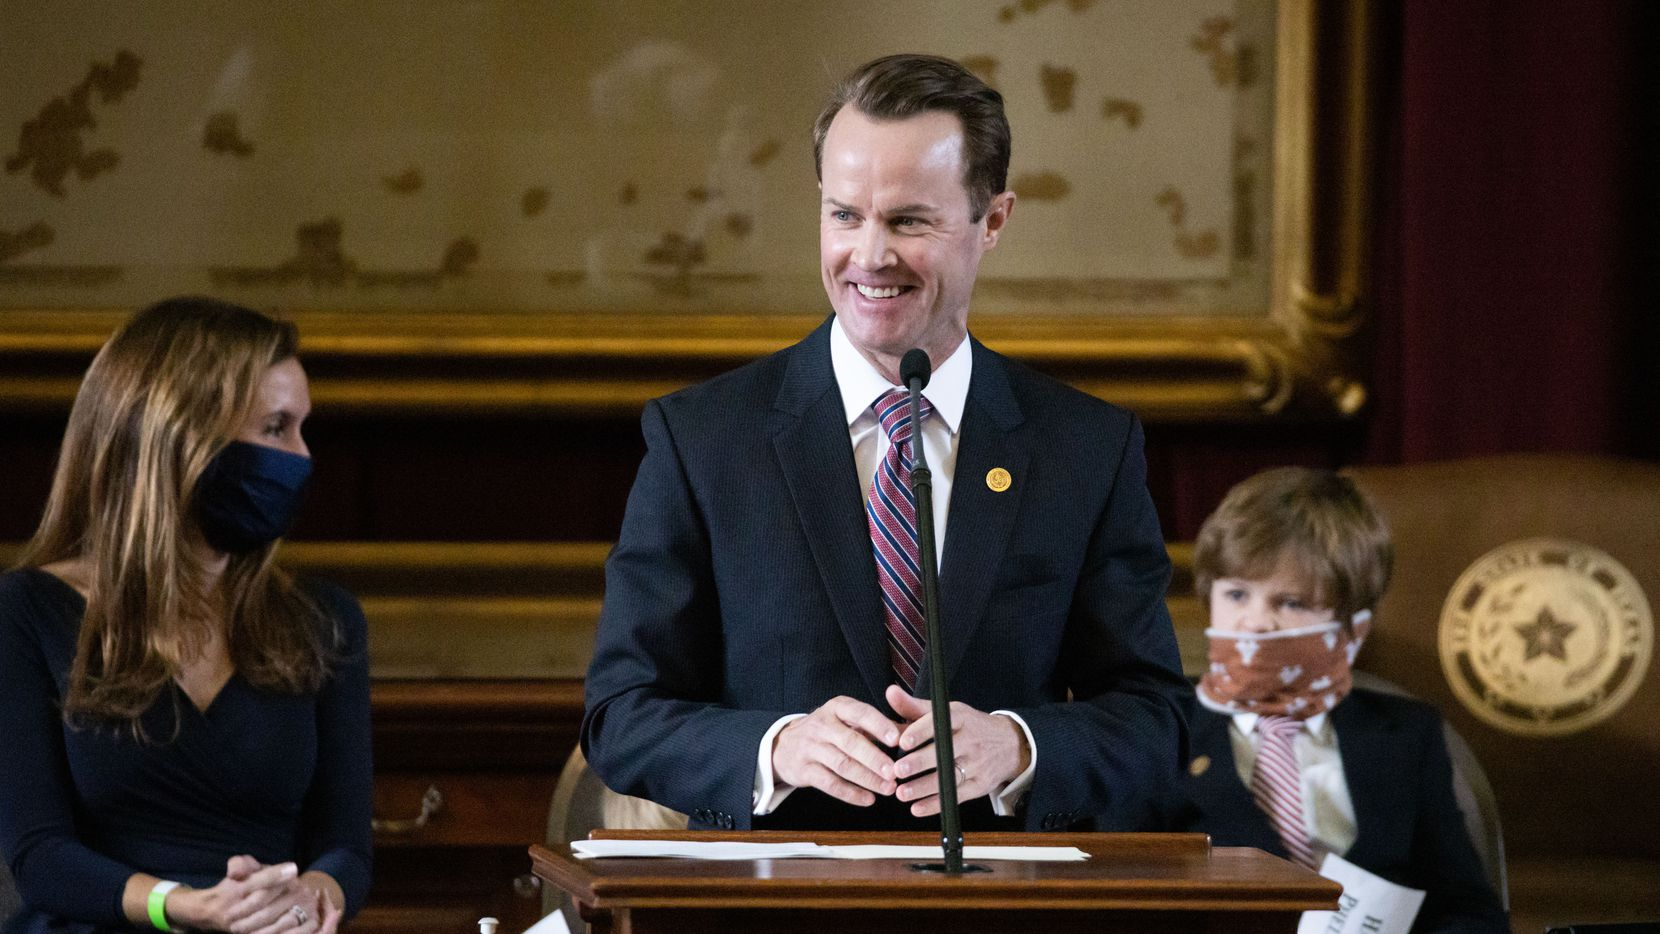 Newly elected Speaker of the Texas House Dade Phelan gives his acceptance address during the House opening ceremony for the 87th Texas Legislature at the Texas Capitol building in Austin, Texas, on Tuesday, Jan. 12, 2021. (Lynda M. González/The Dallas Morning News)